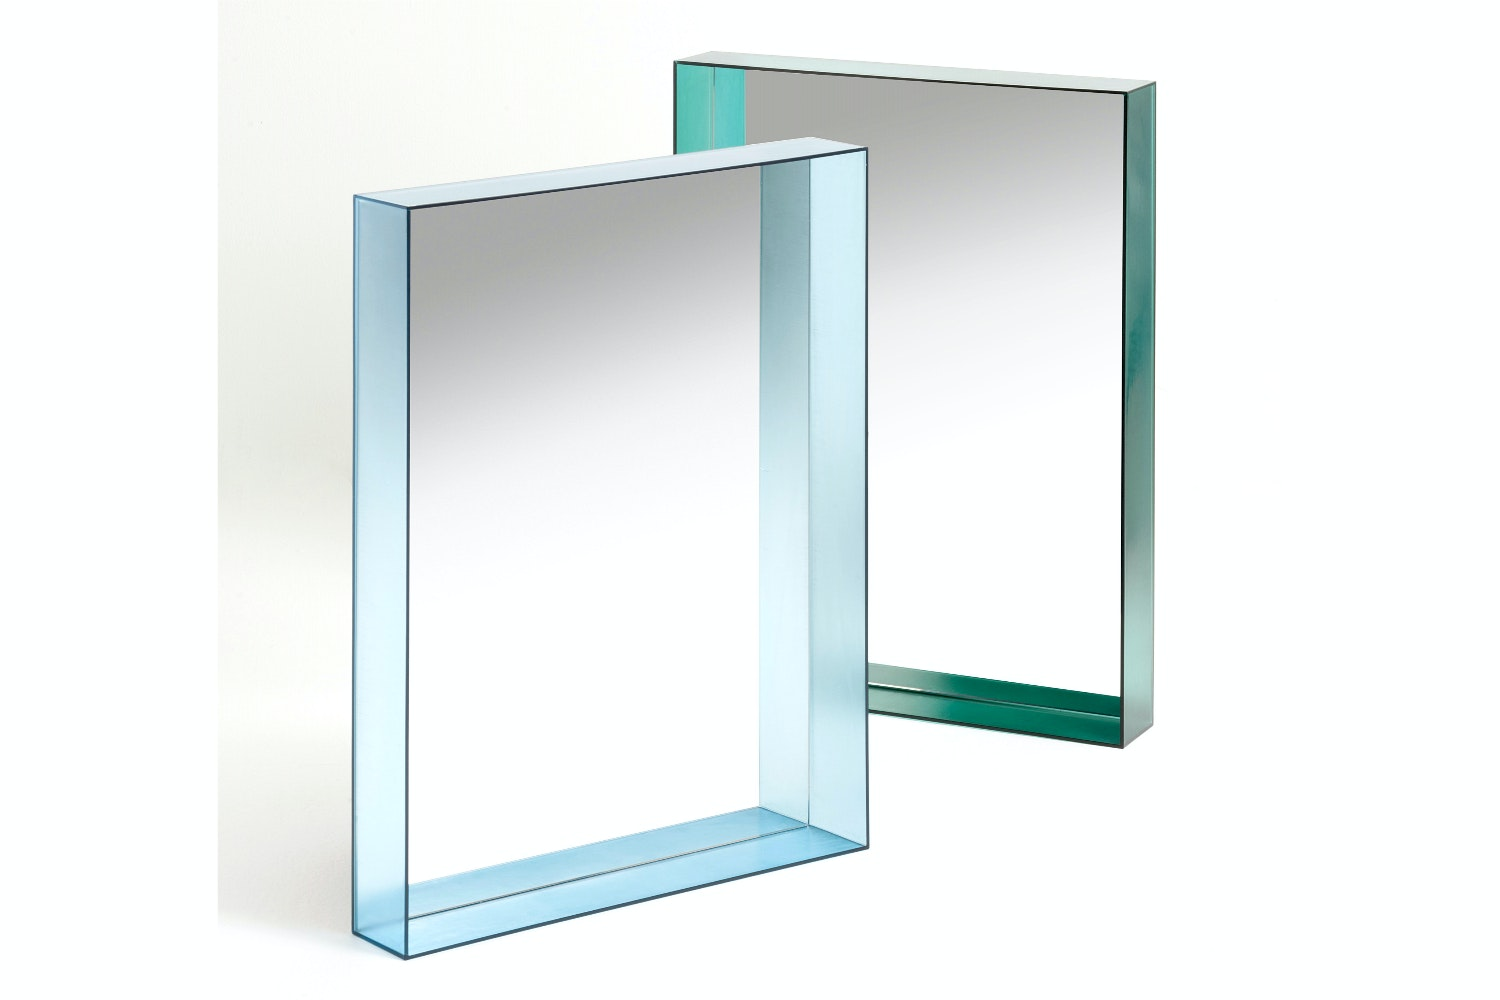 Only Me Mirror by Philippe Starck for Kartell